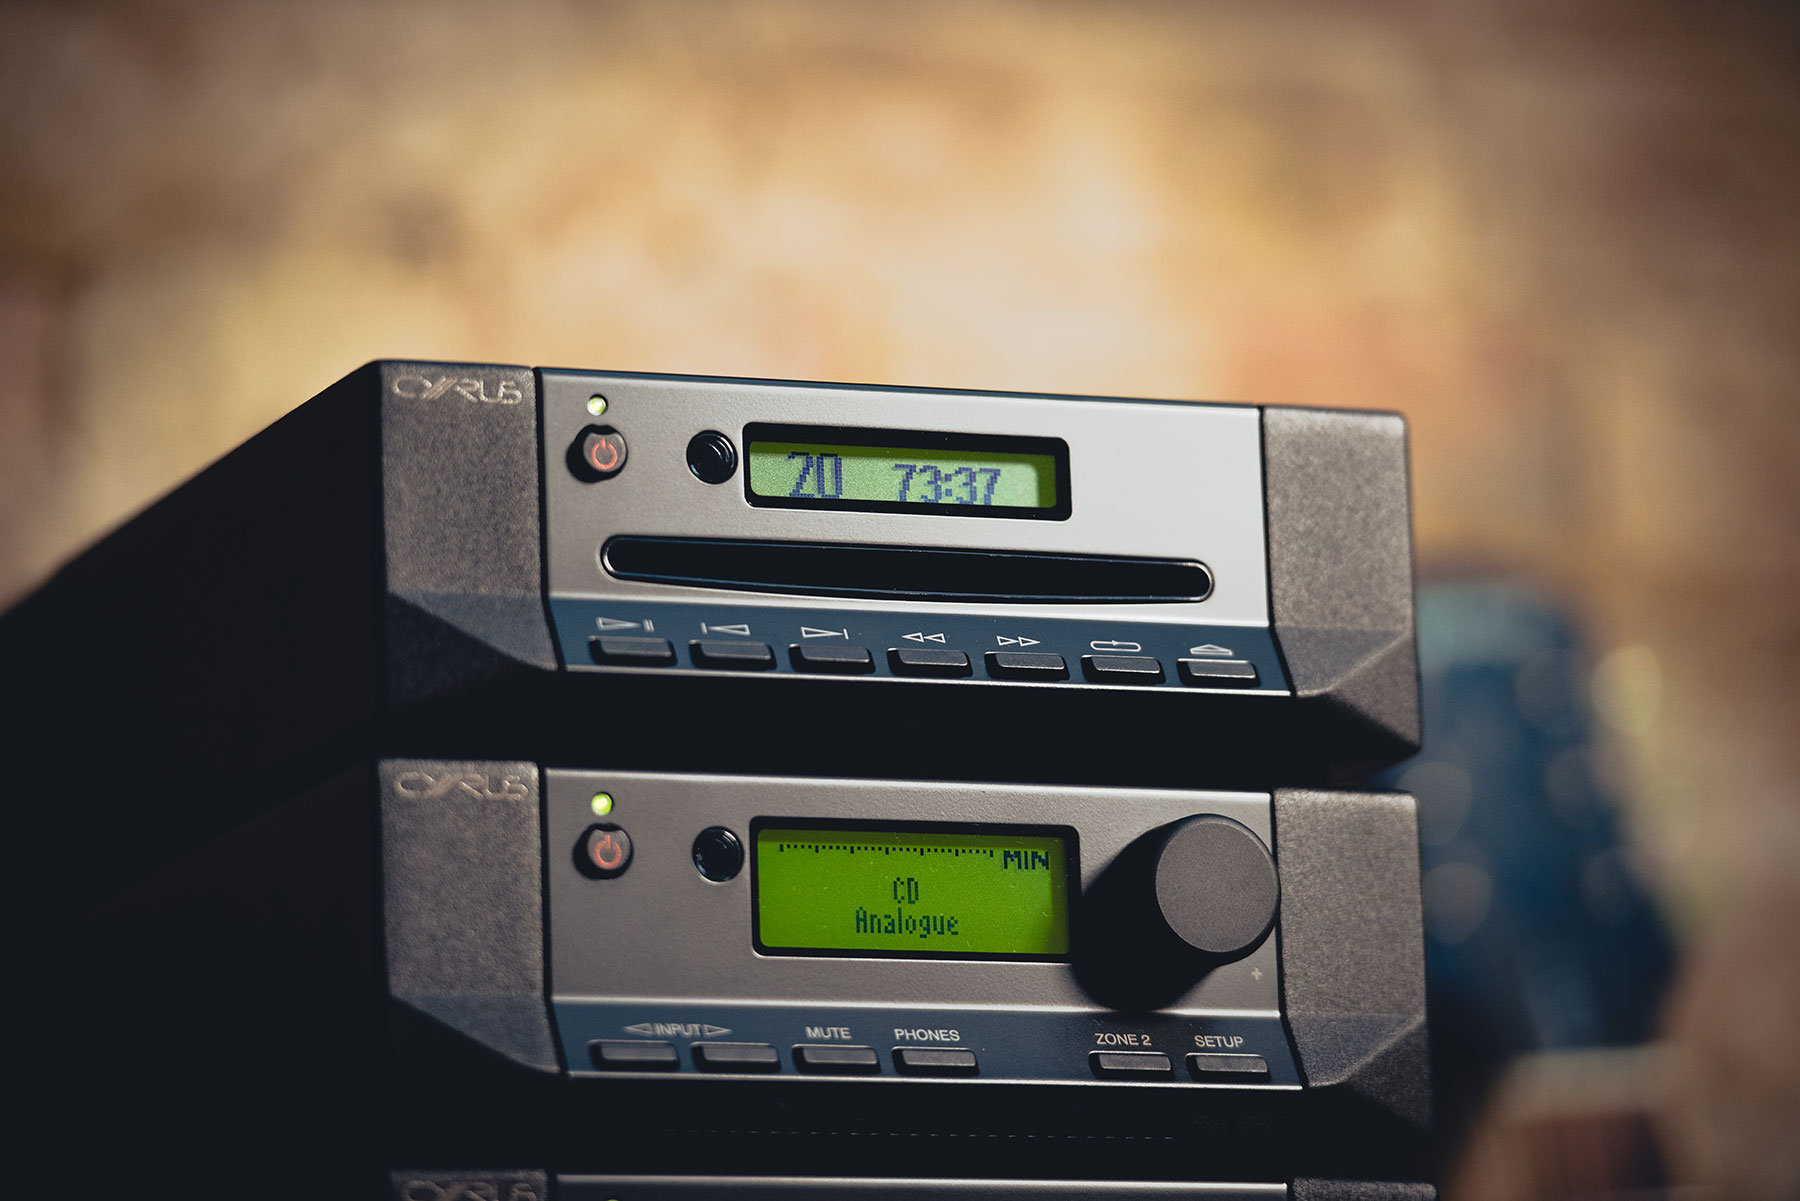 Cyrus 6 Dac Integrated Amplifier With Digital Inputs And